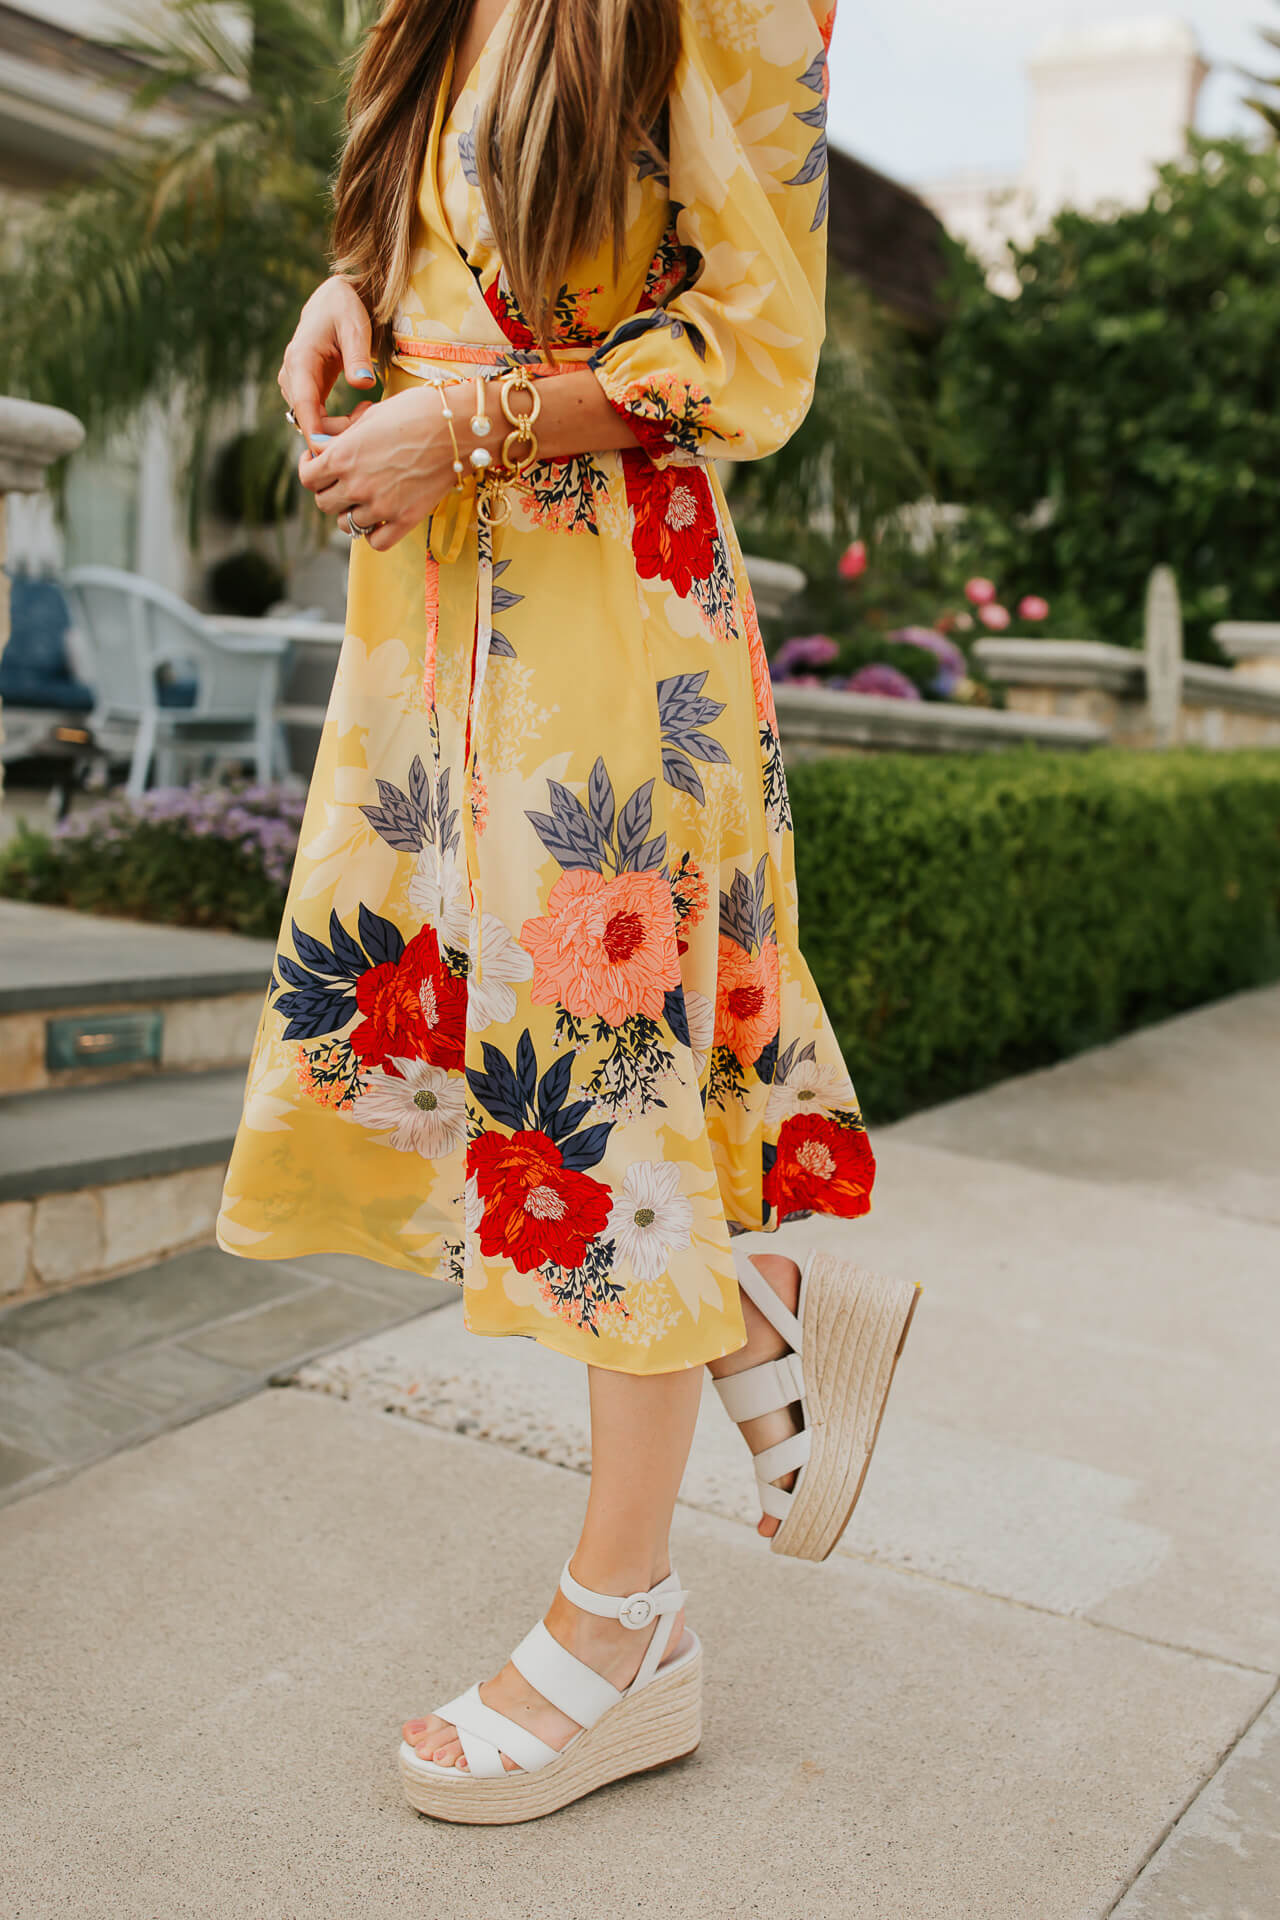 Wedges and wrap dresses are such a fun summer outfit! | M Loves M @marmar